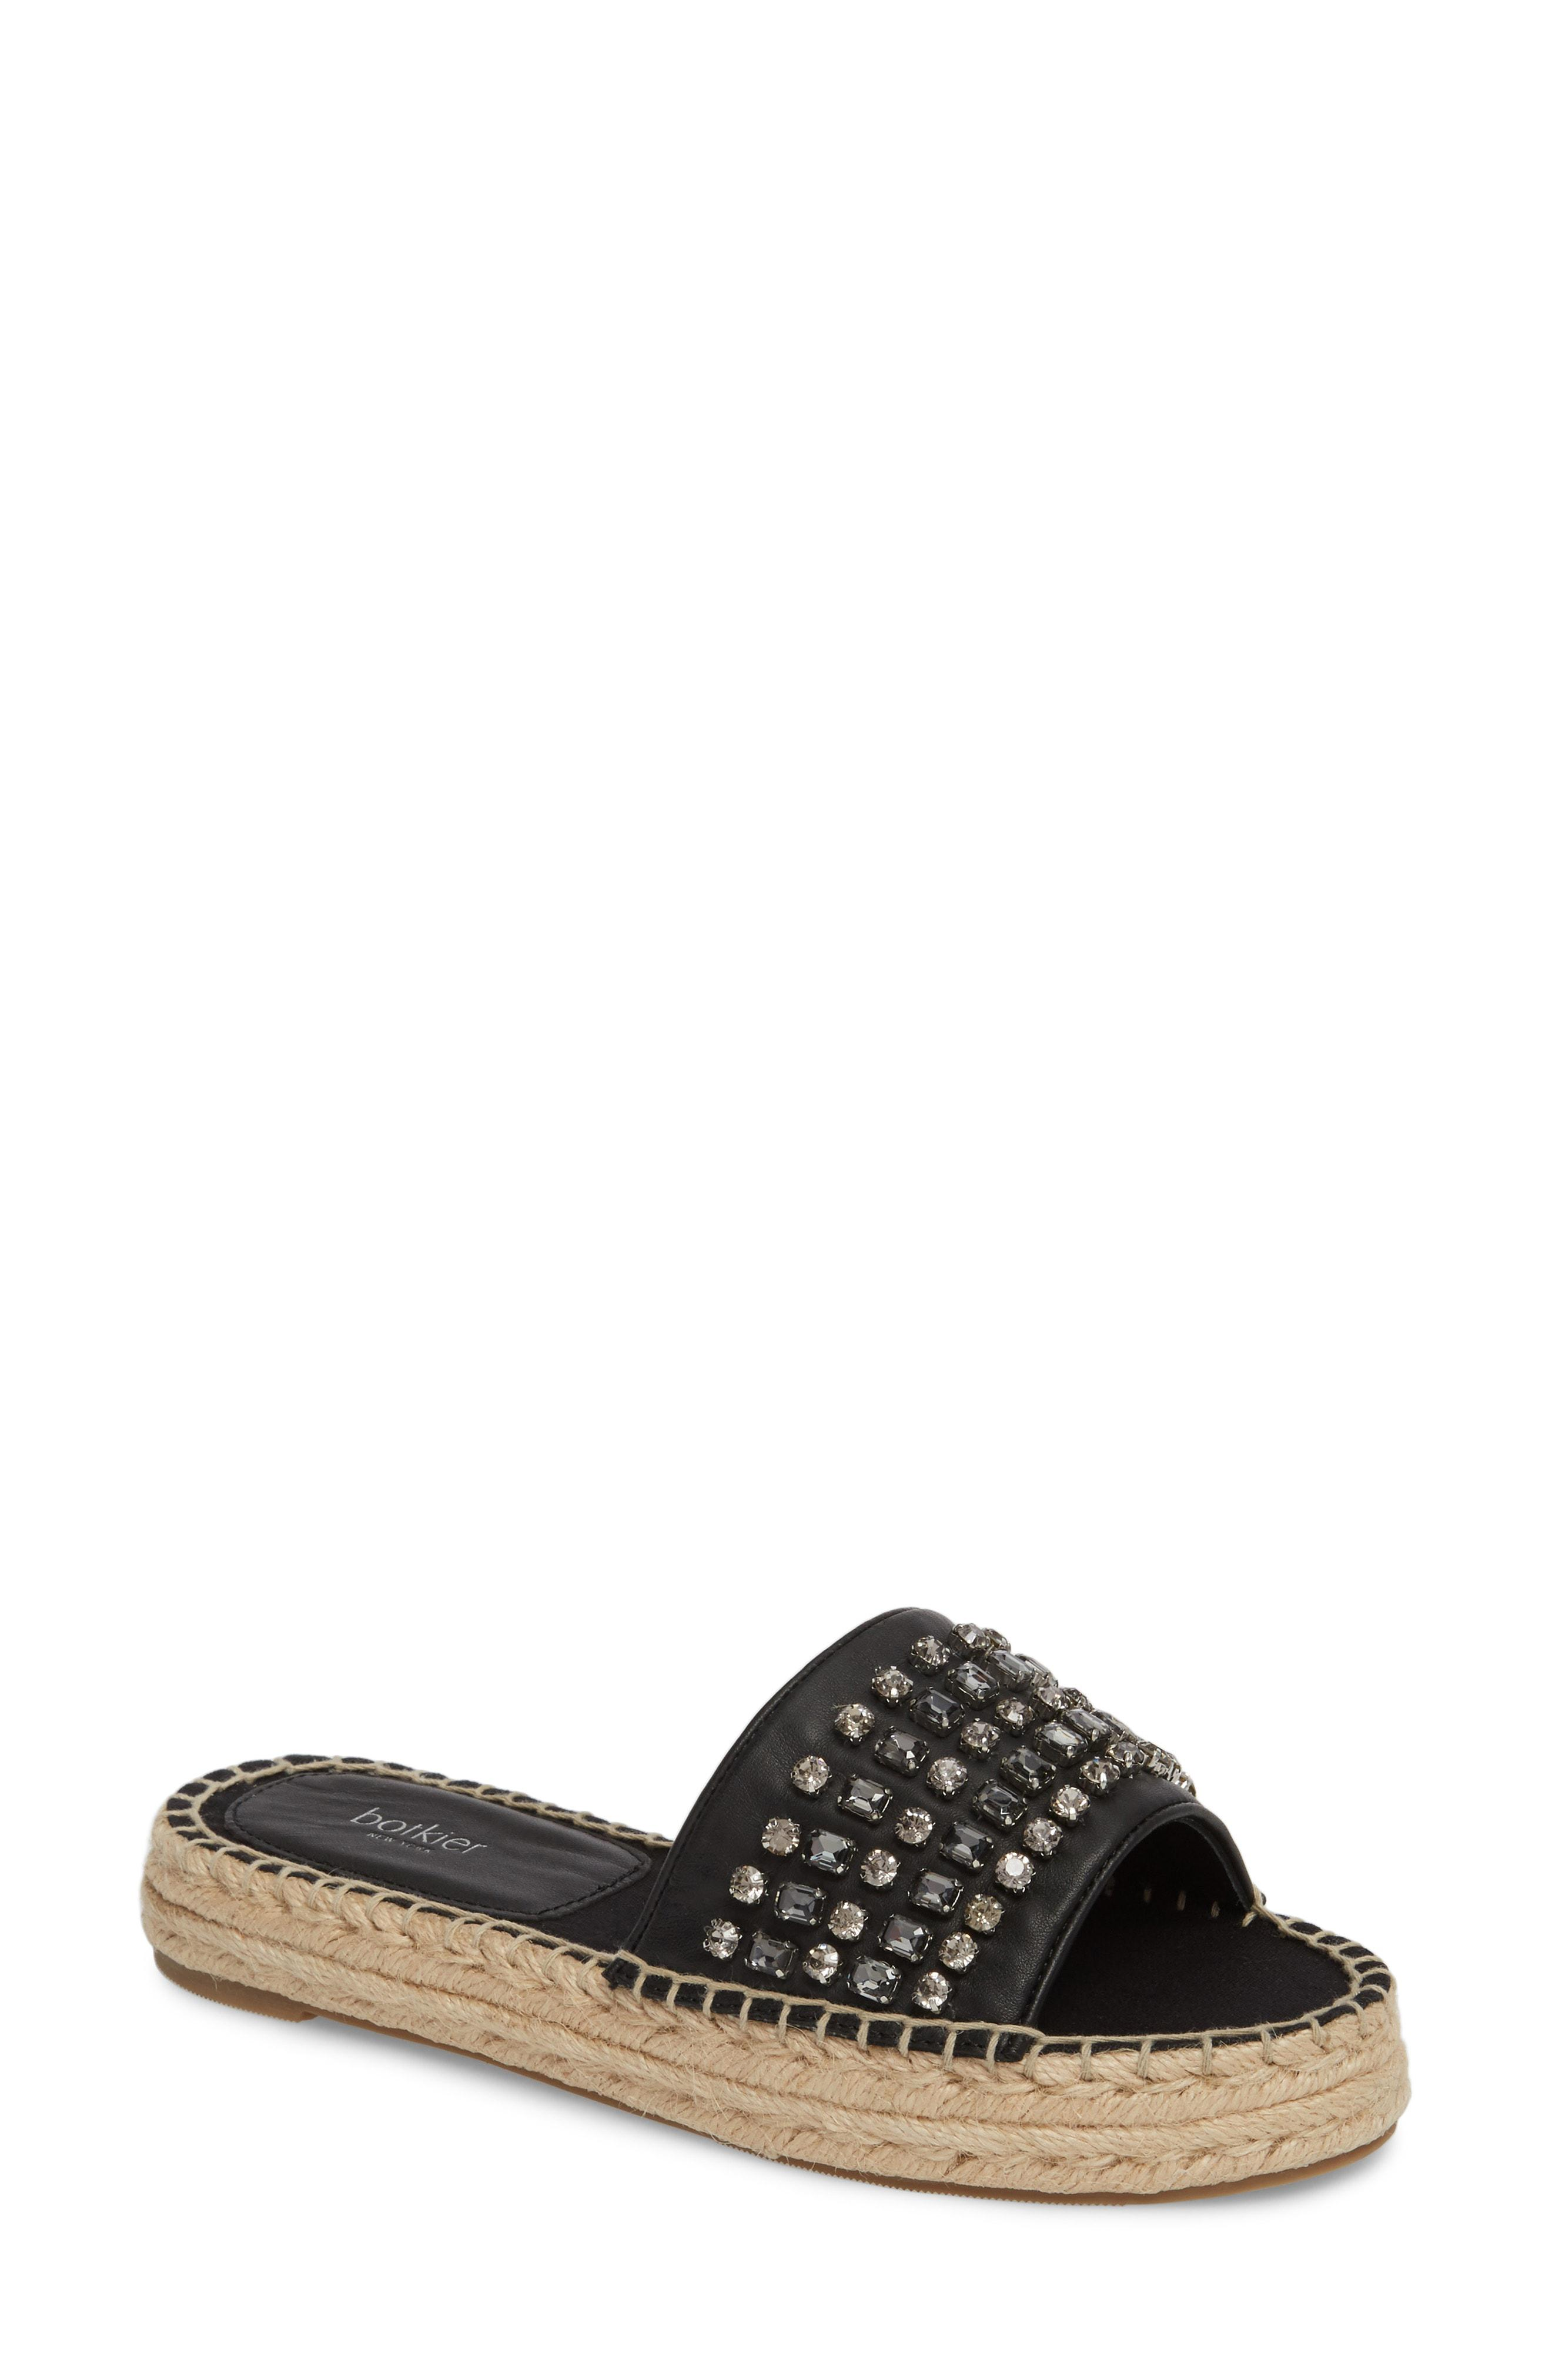 cd8e2818a Lyst - Botkier Julie Leather Jeweled Espadrille Sandals in Black